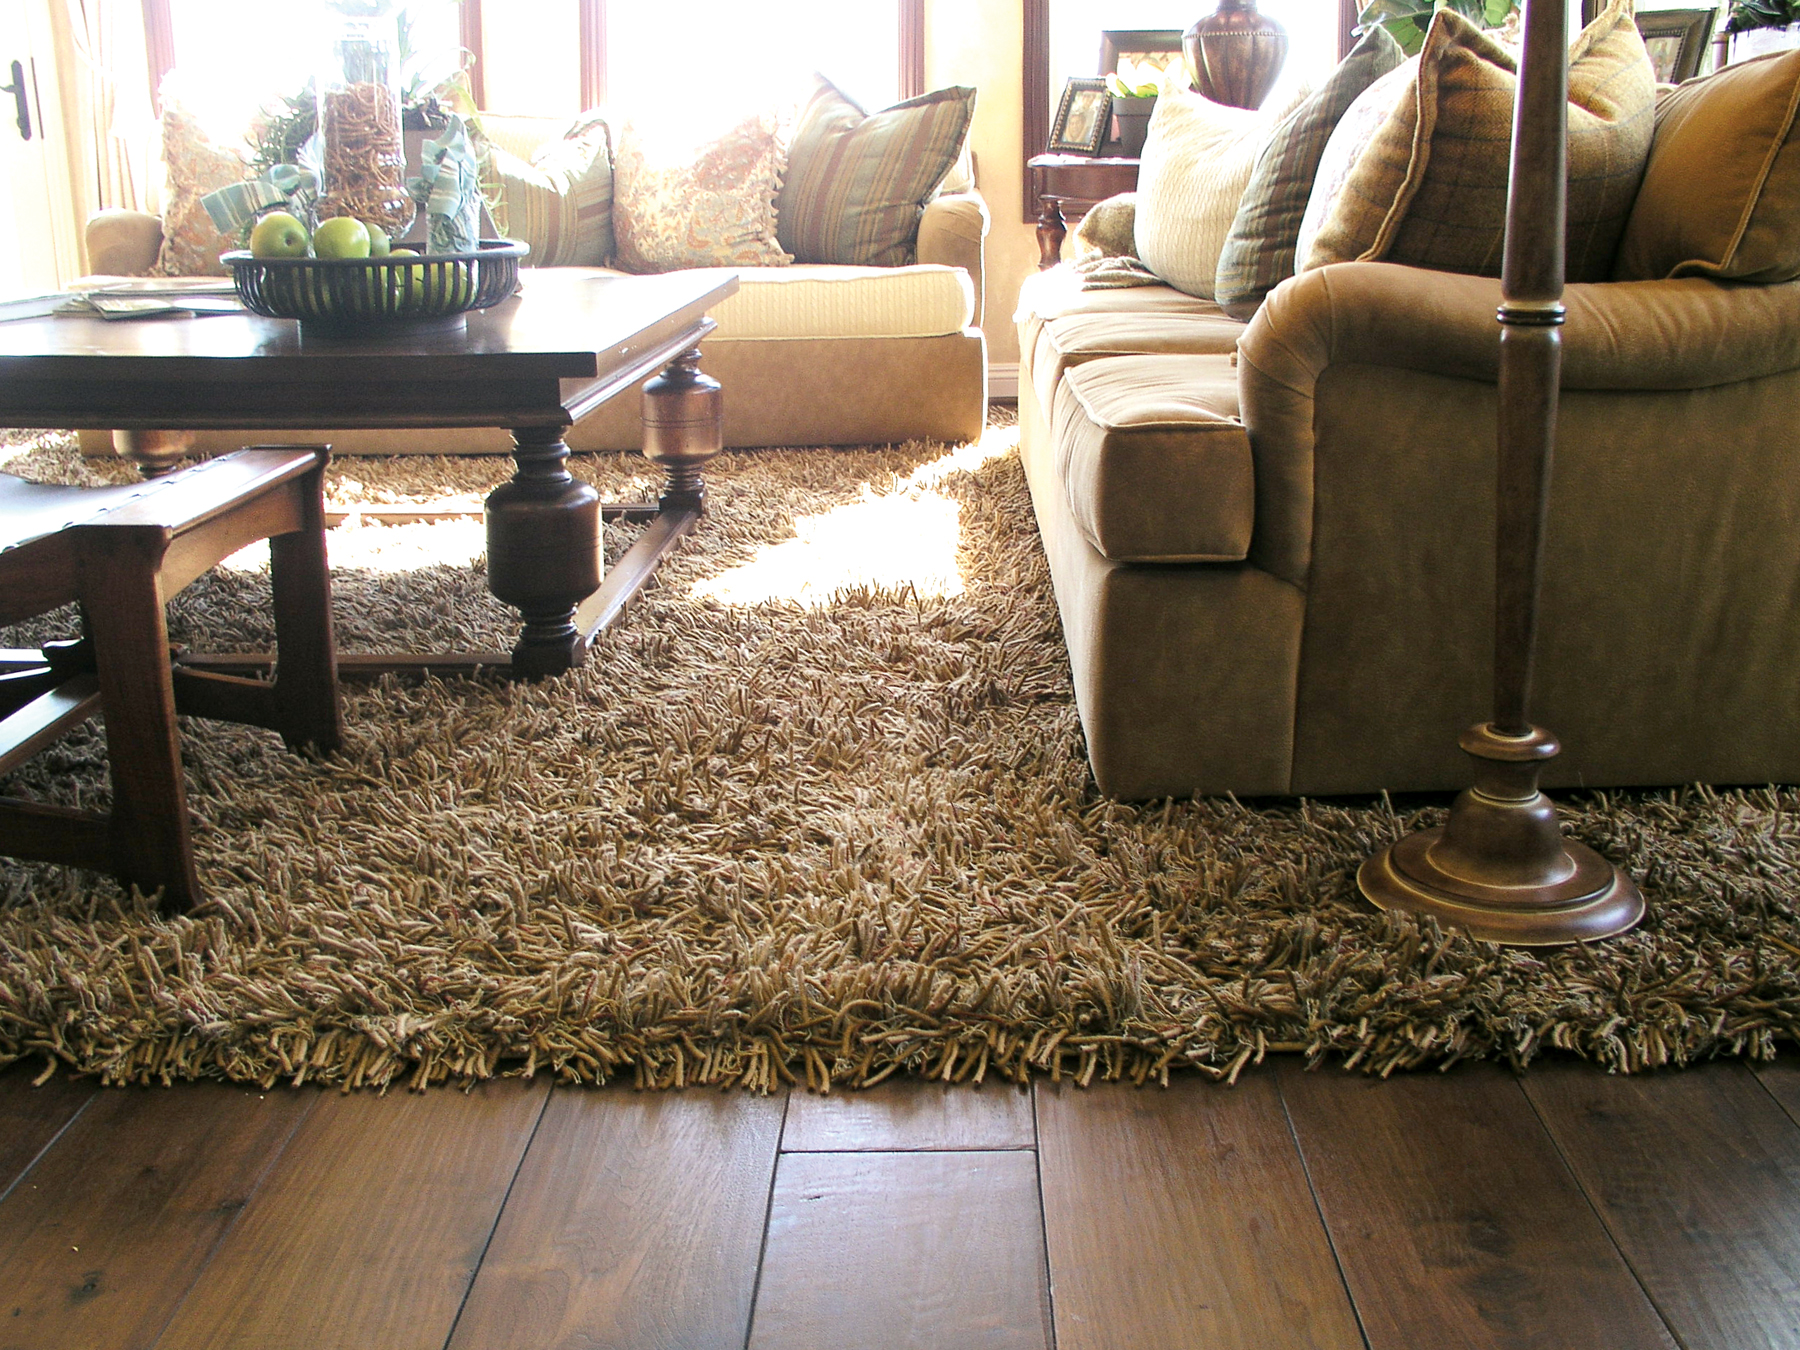 We Can Work With Your Requirement And Your Budget And We Can Cater To All Of These And You Will Not Find Your New Living Room Carpet Cheaper Anywhere Else